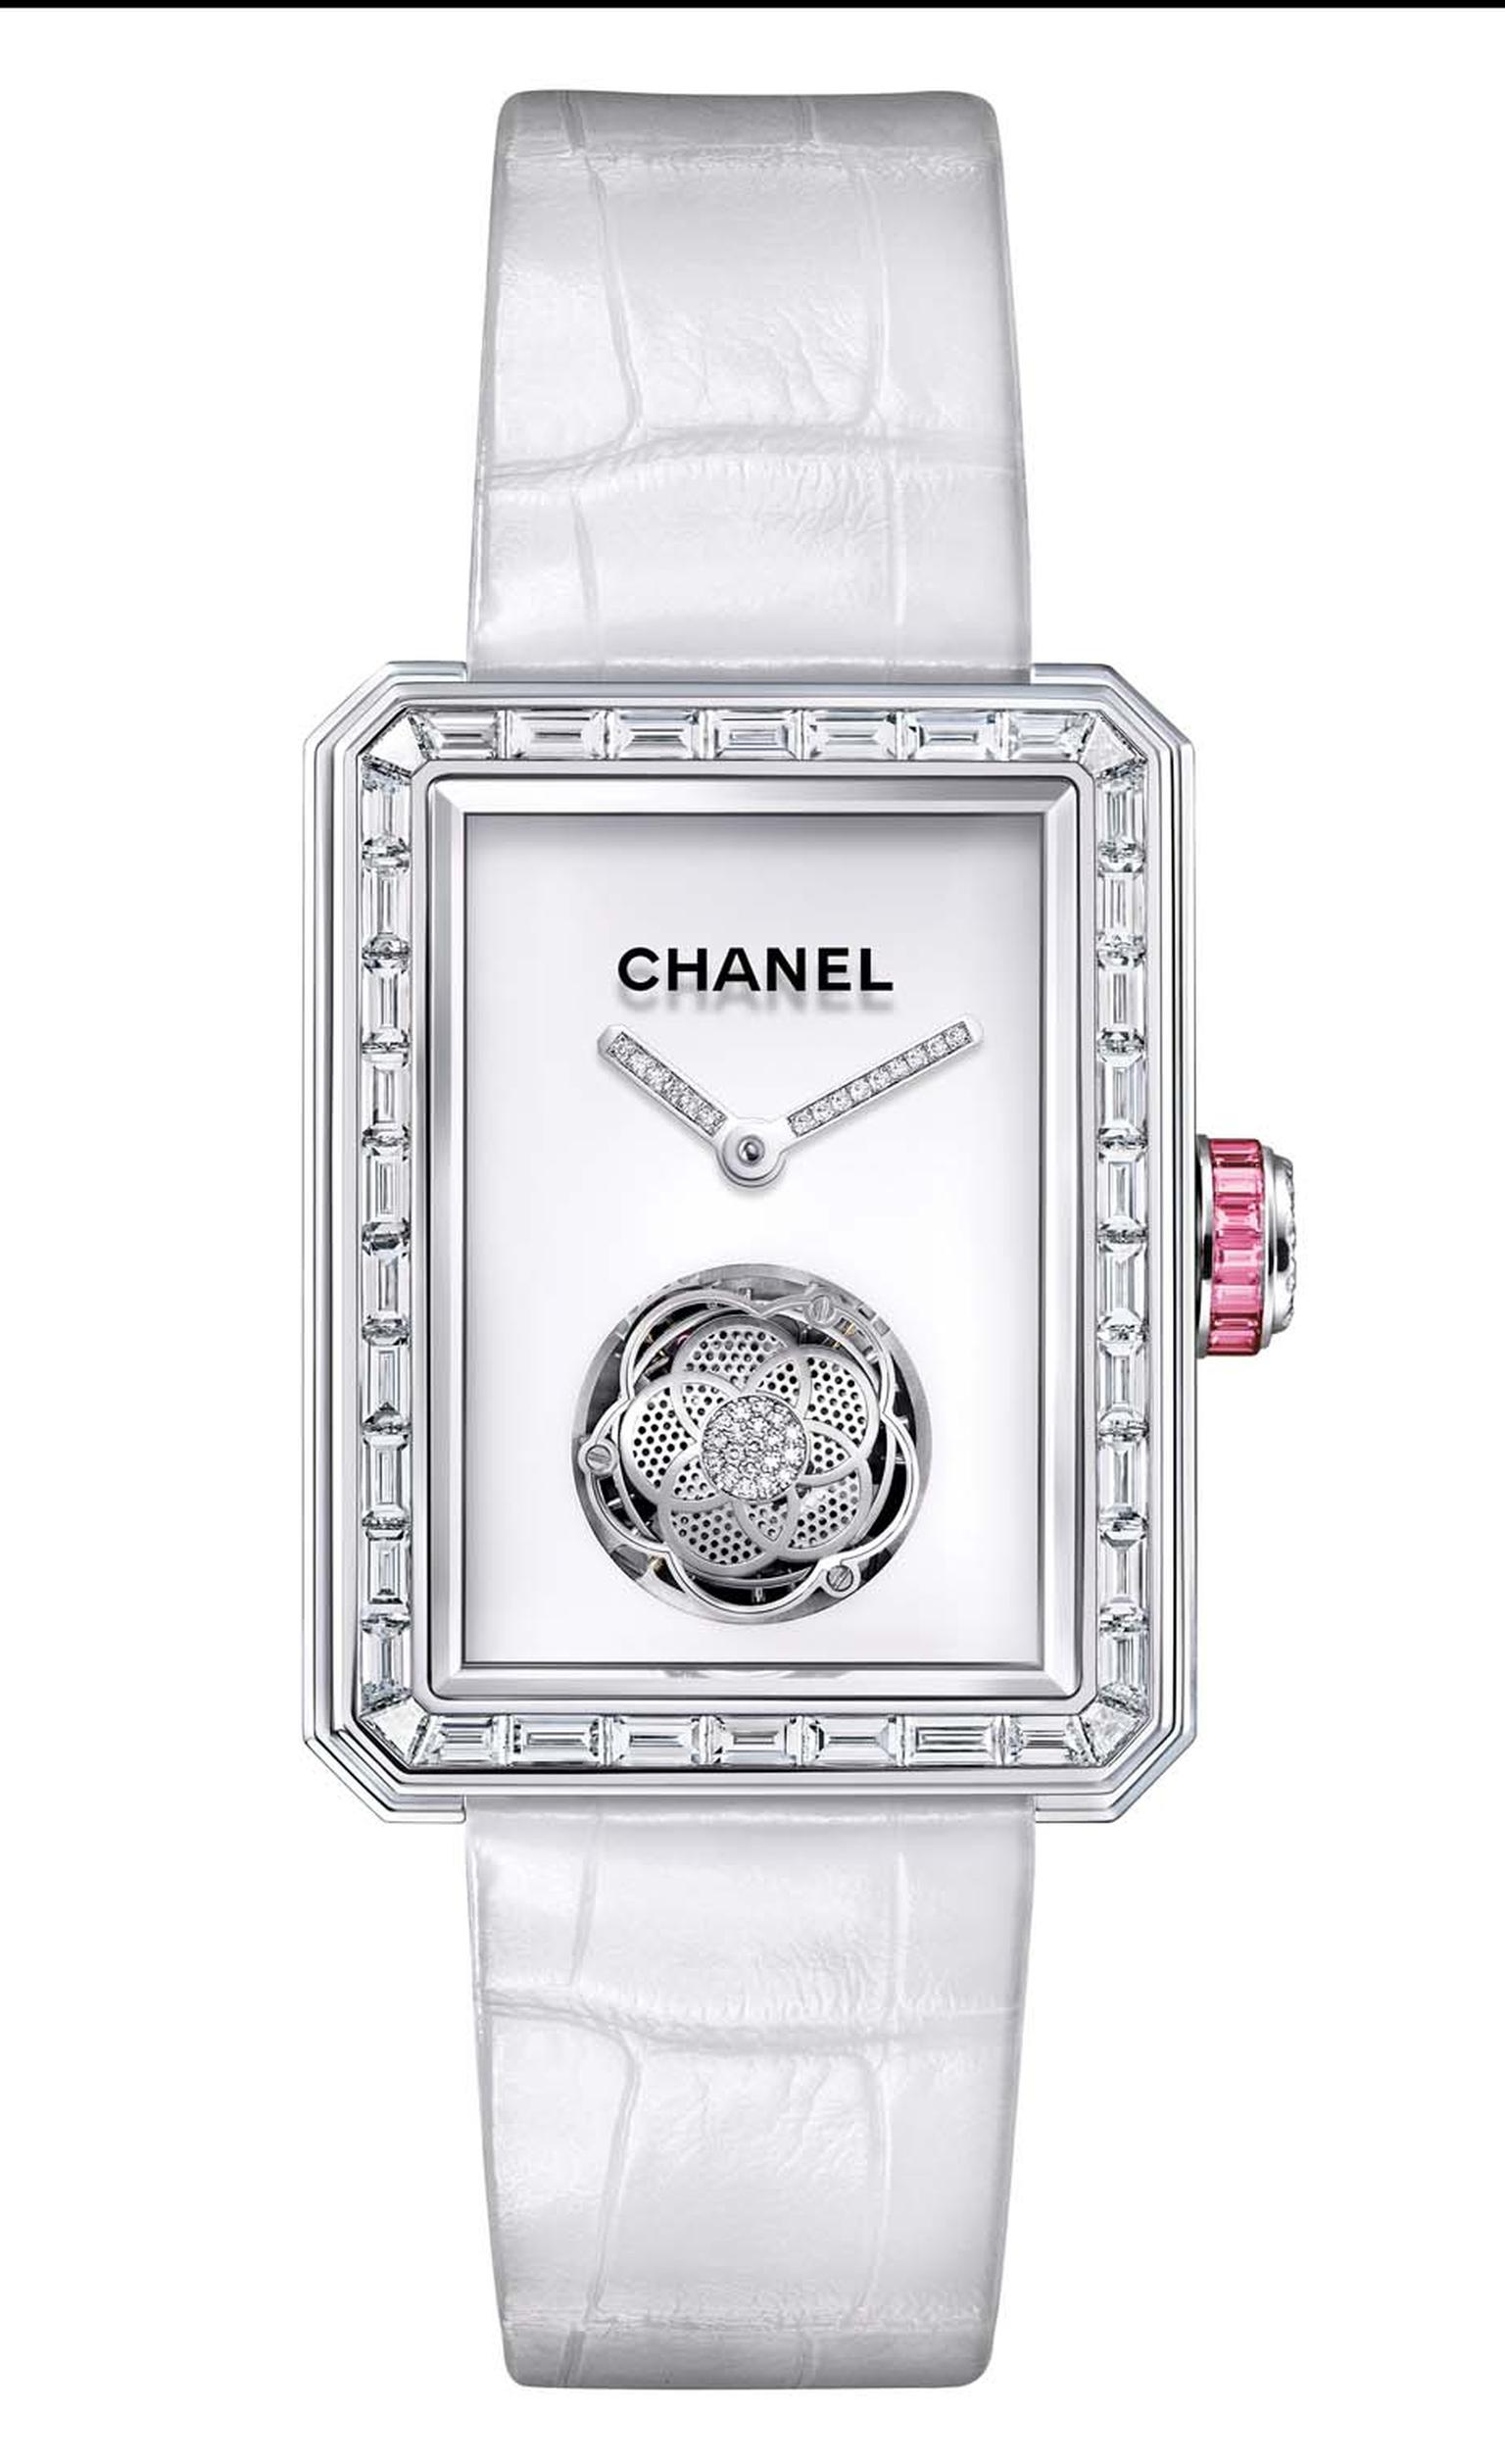 A limited edition of 20 pieces, the flying tourbillon movement in Chanel's new Première Flying Tourbillon watch is crafted in the shape of Mademoiselle Chanel's favourite flower, the camellia